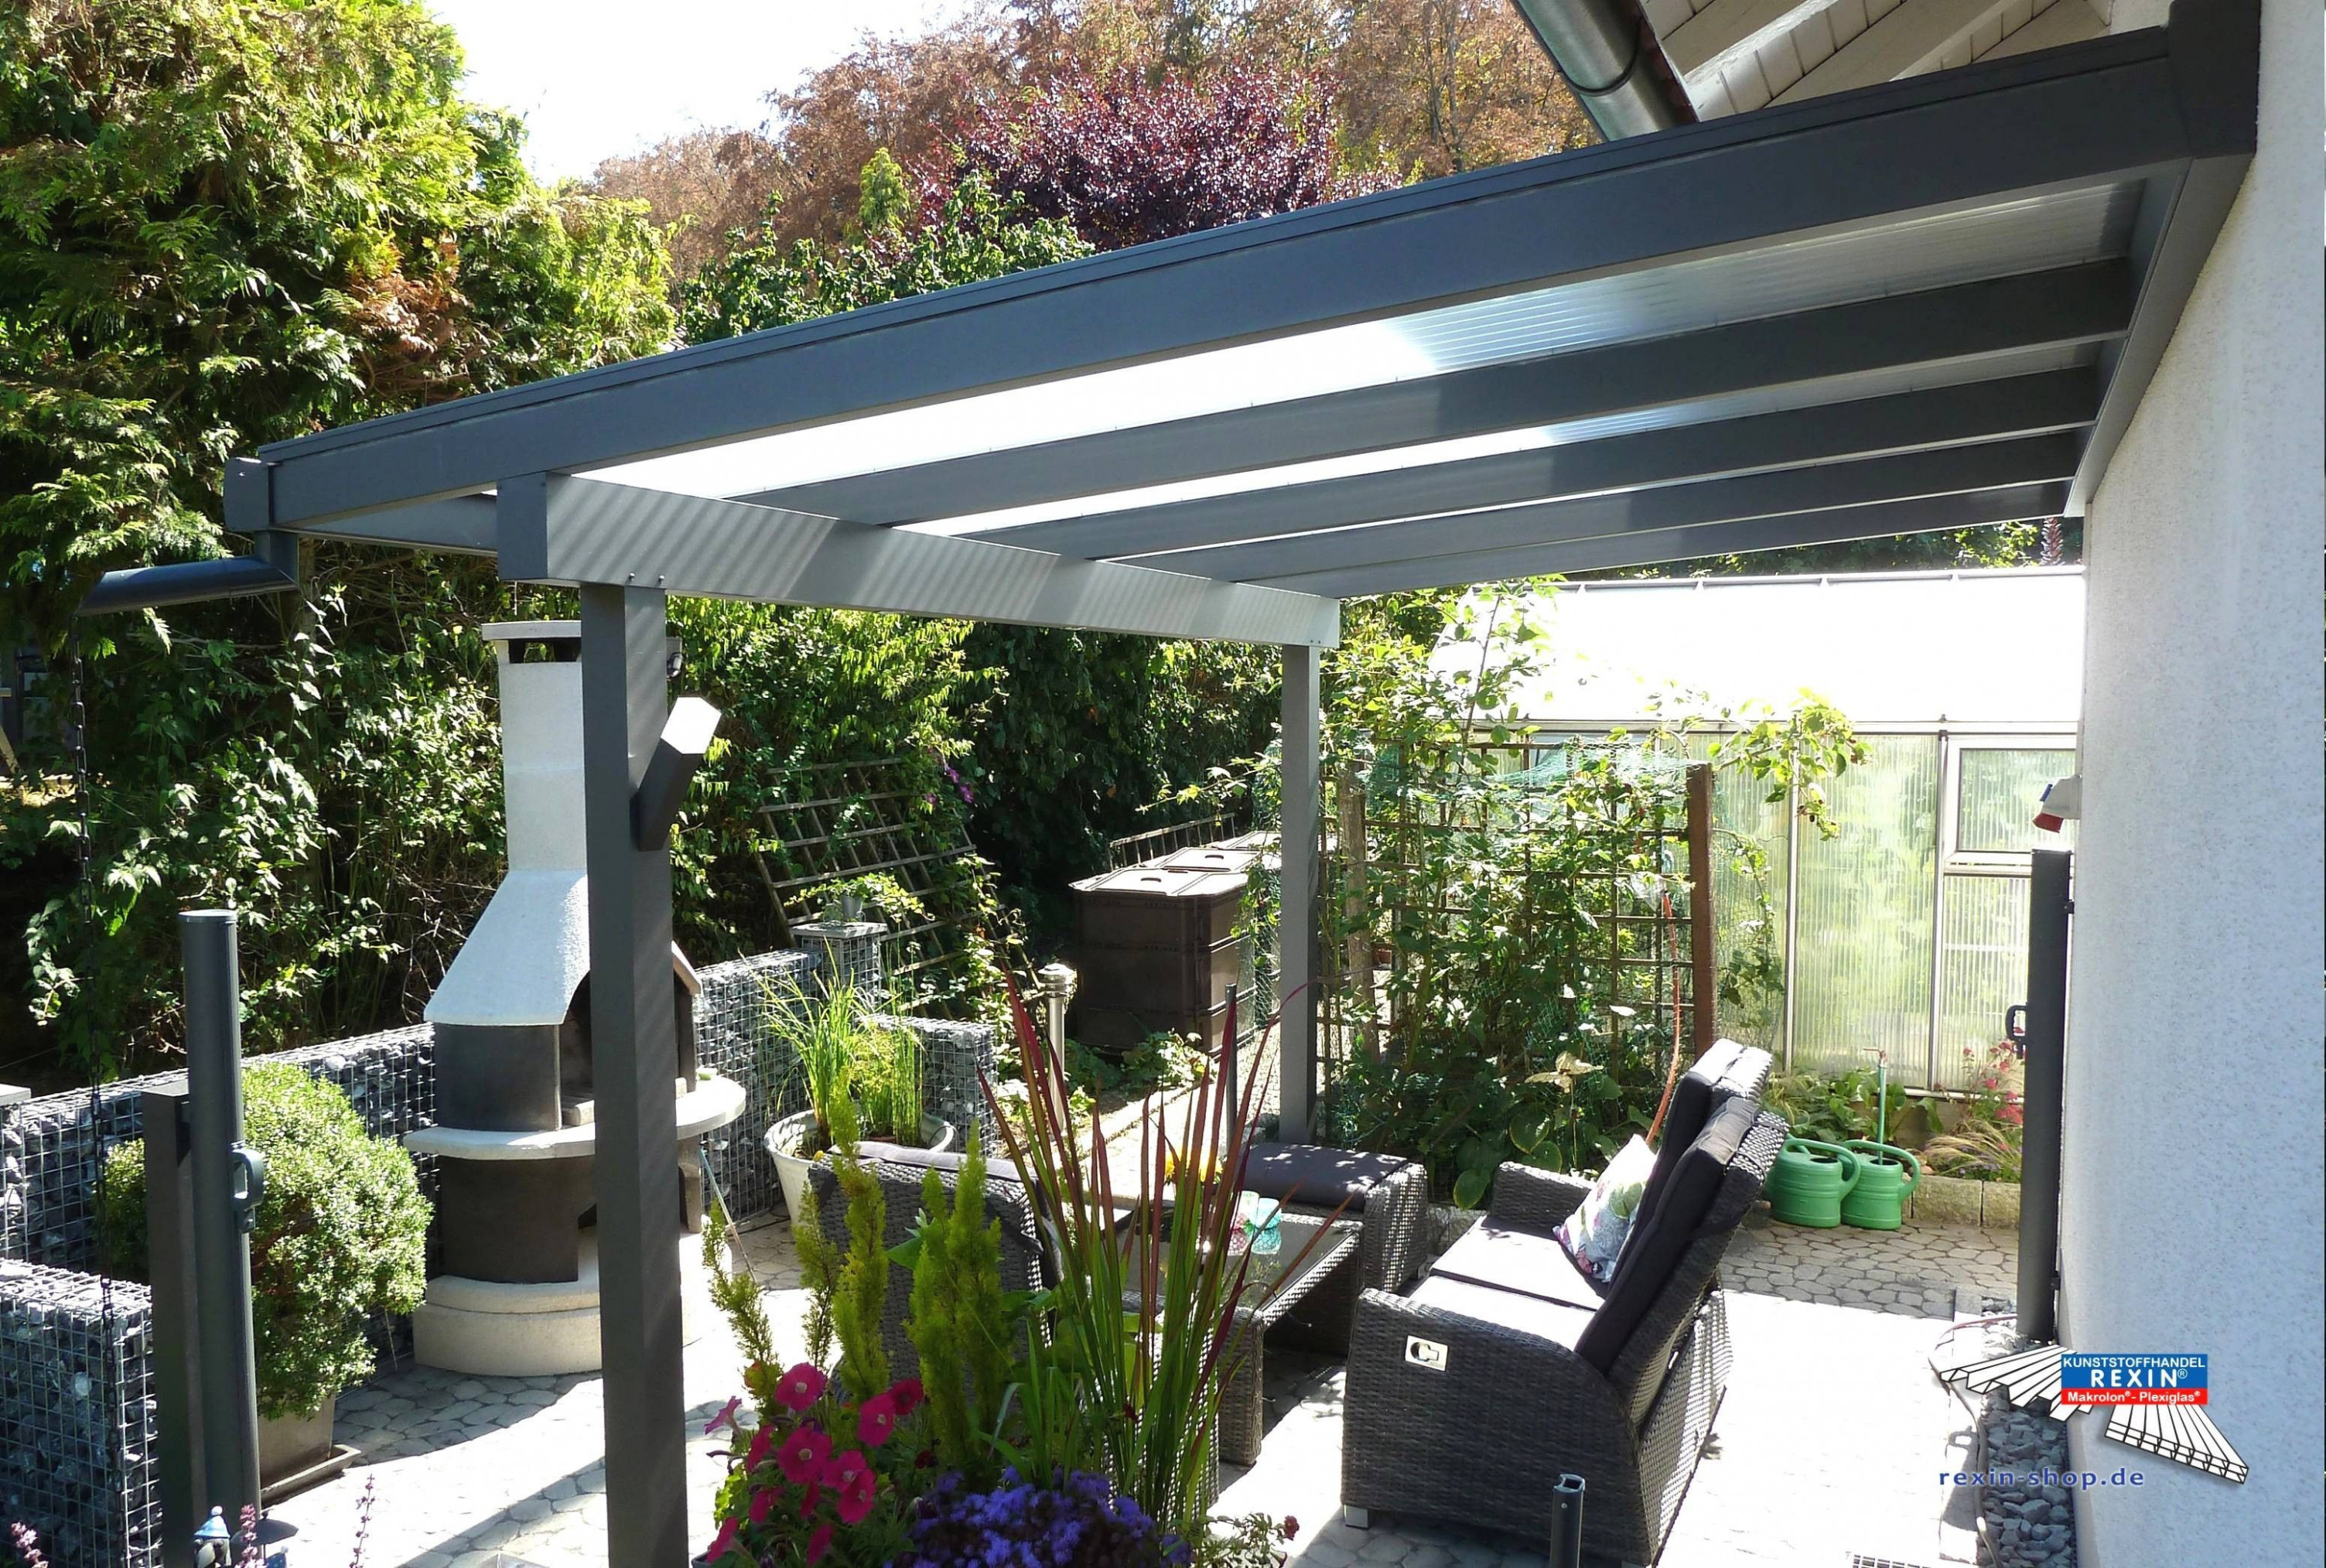 Pin by Home Depot on Decoration | Pergola carport, Pergola ...